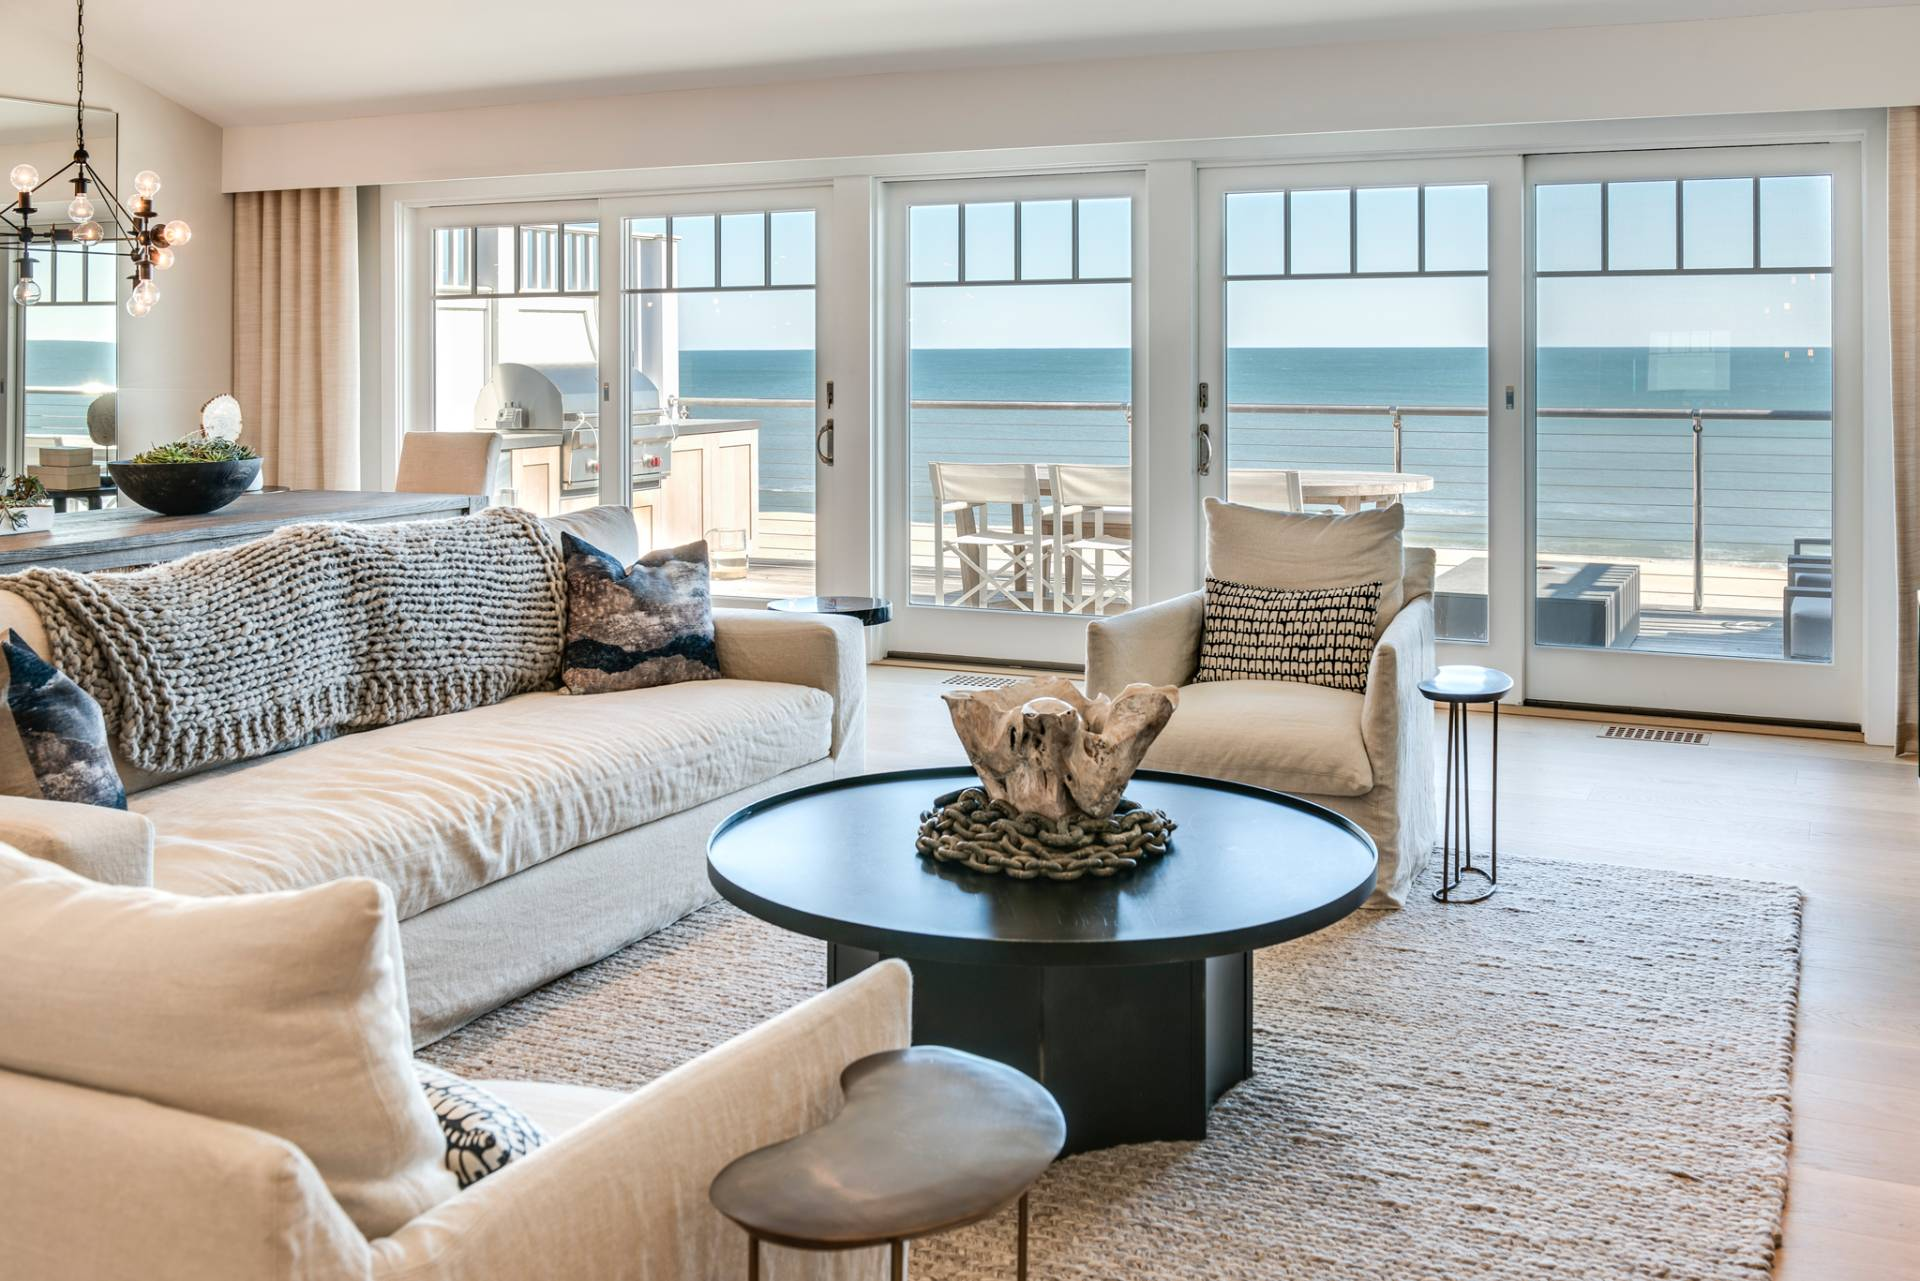 Co-op for Sale at Gurney's Residences - Incredible Five Bedroom Oceanfront 272 Old Montauk Highway, Salt Sea #5, Montauk, New York